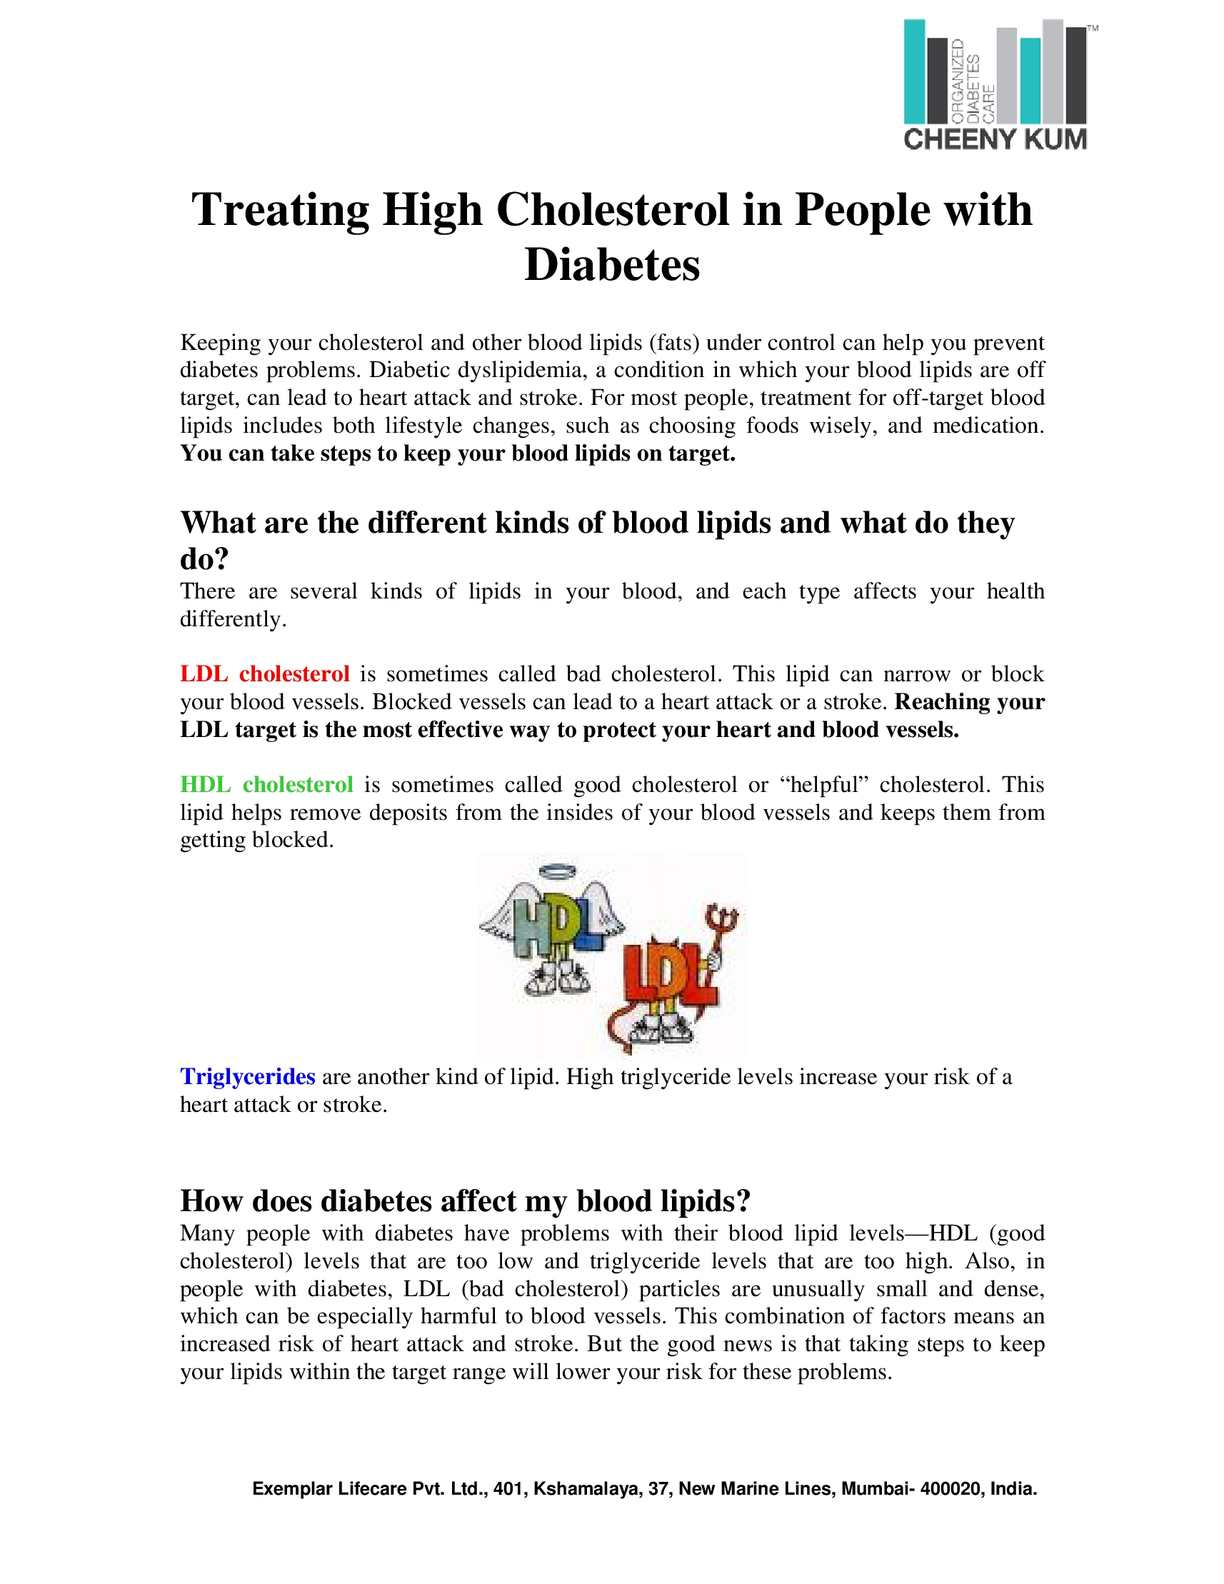 The most effective lipid treatment